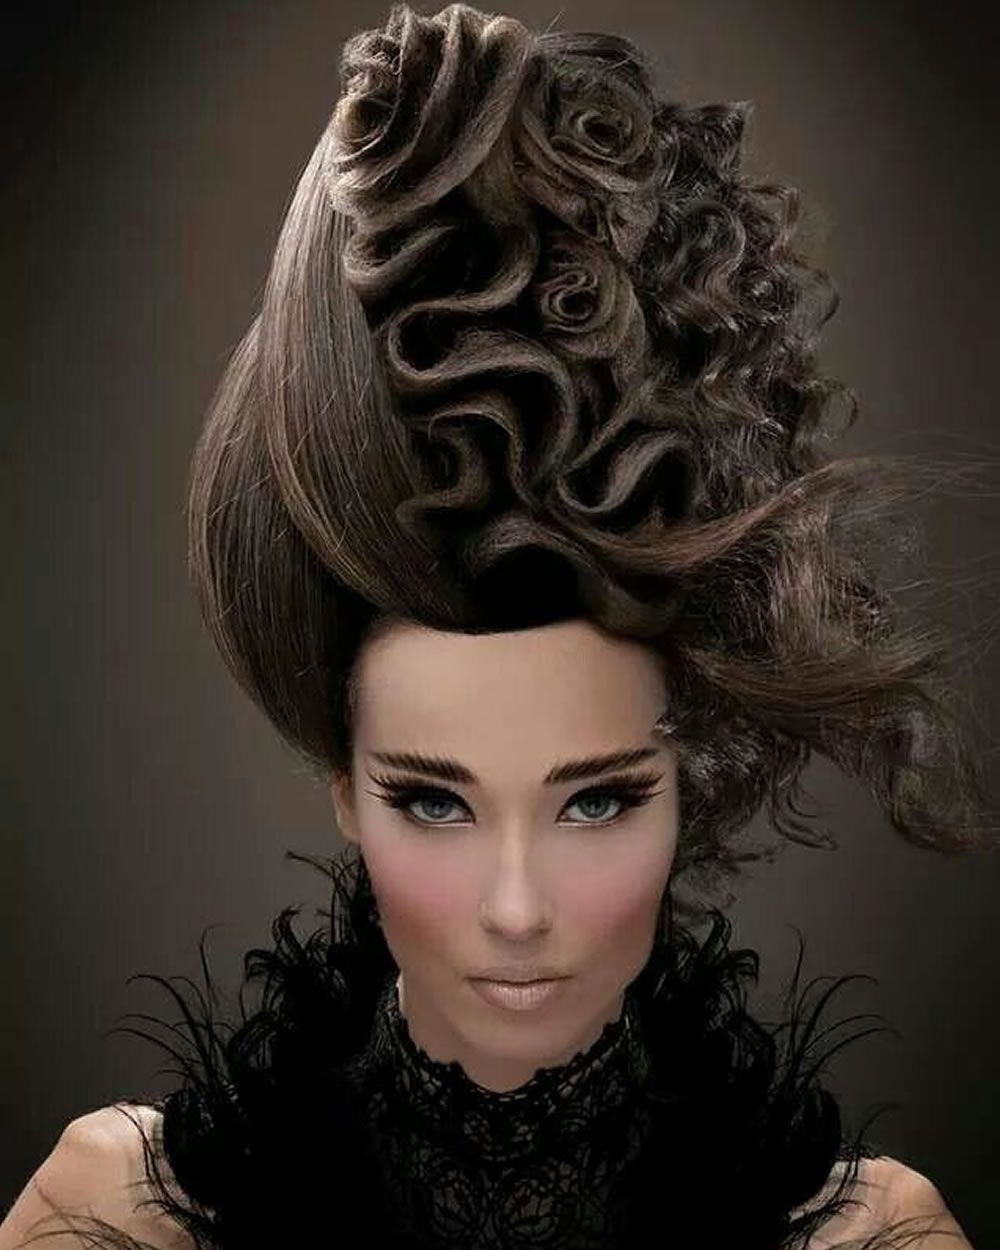 Extreme Hairstyles And Haircuts For Crazy Women Crazy Extreme Haircuts Hairstyles Women Hair Styles Artistic Hair Hair Shows